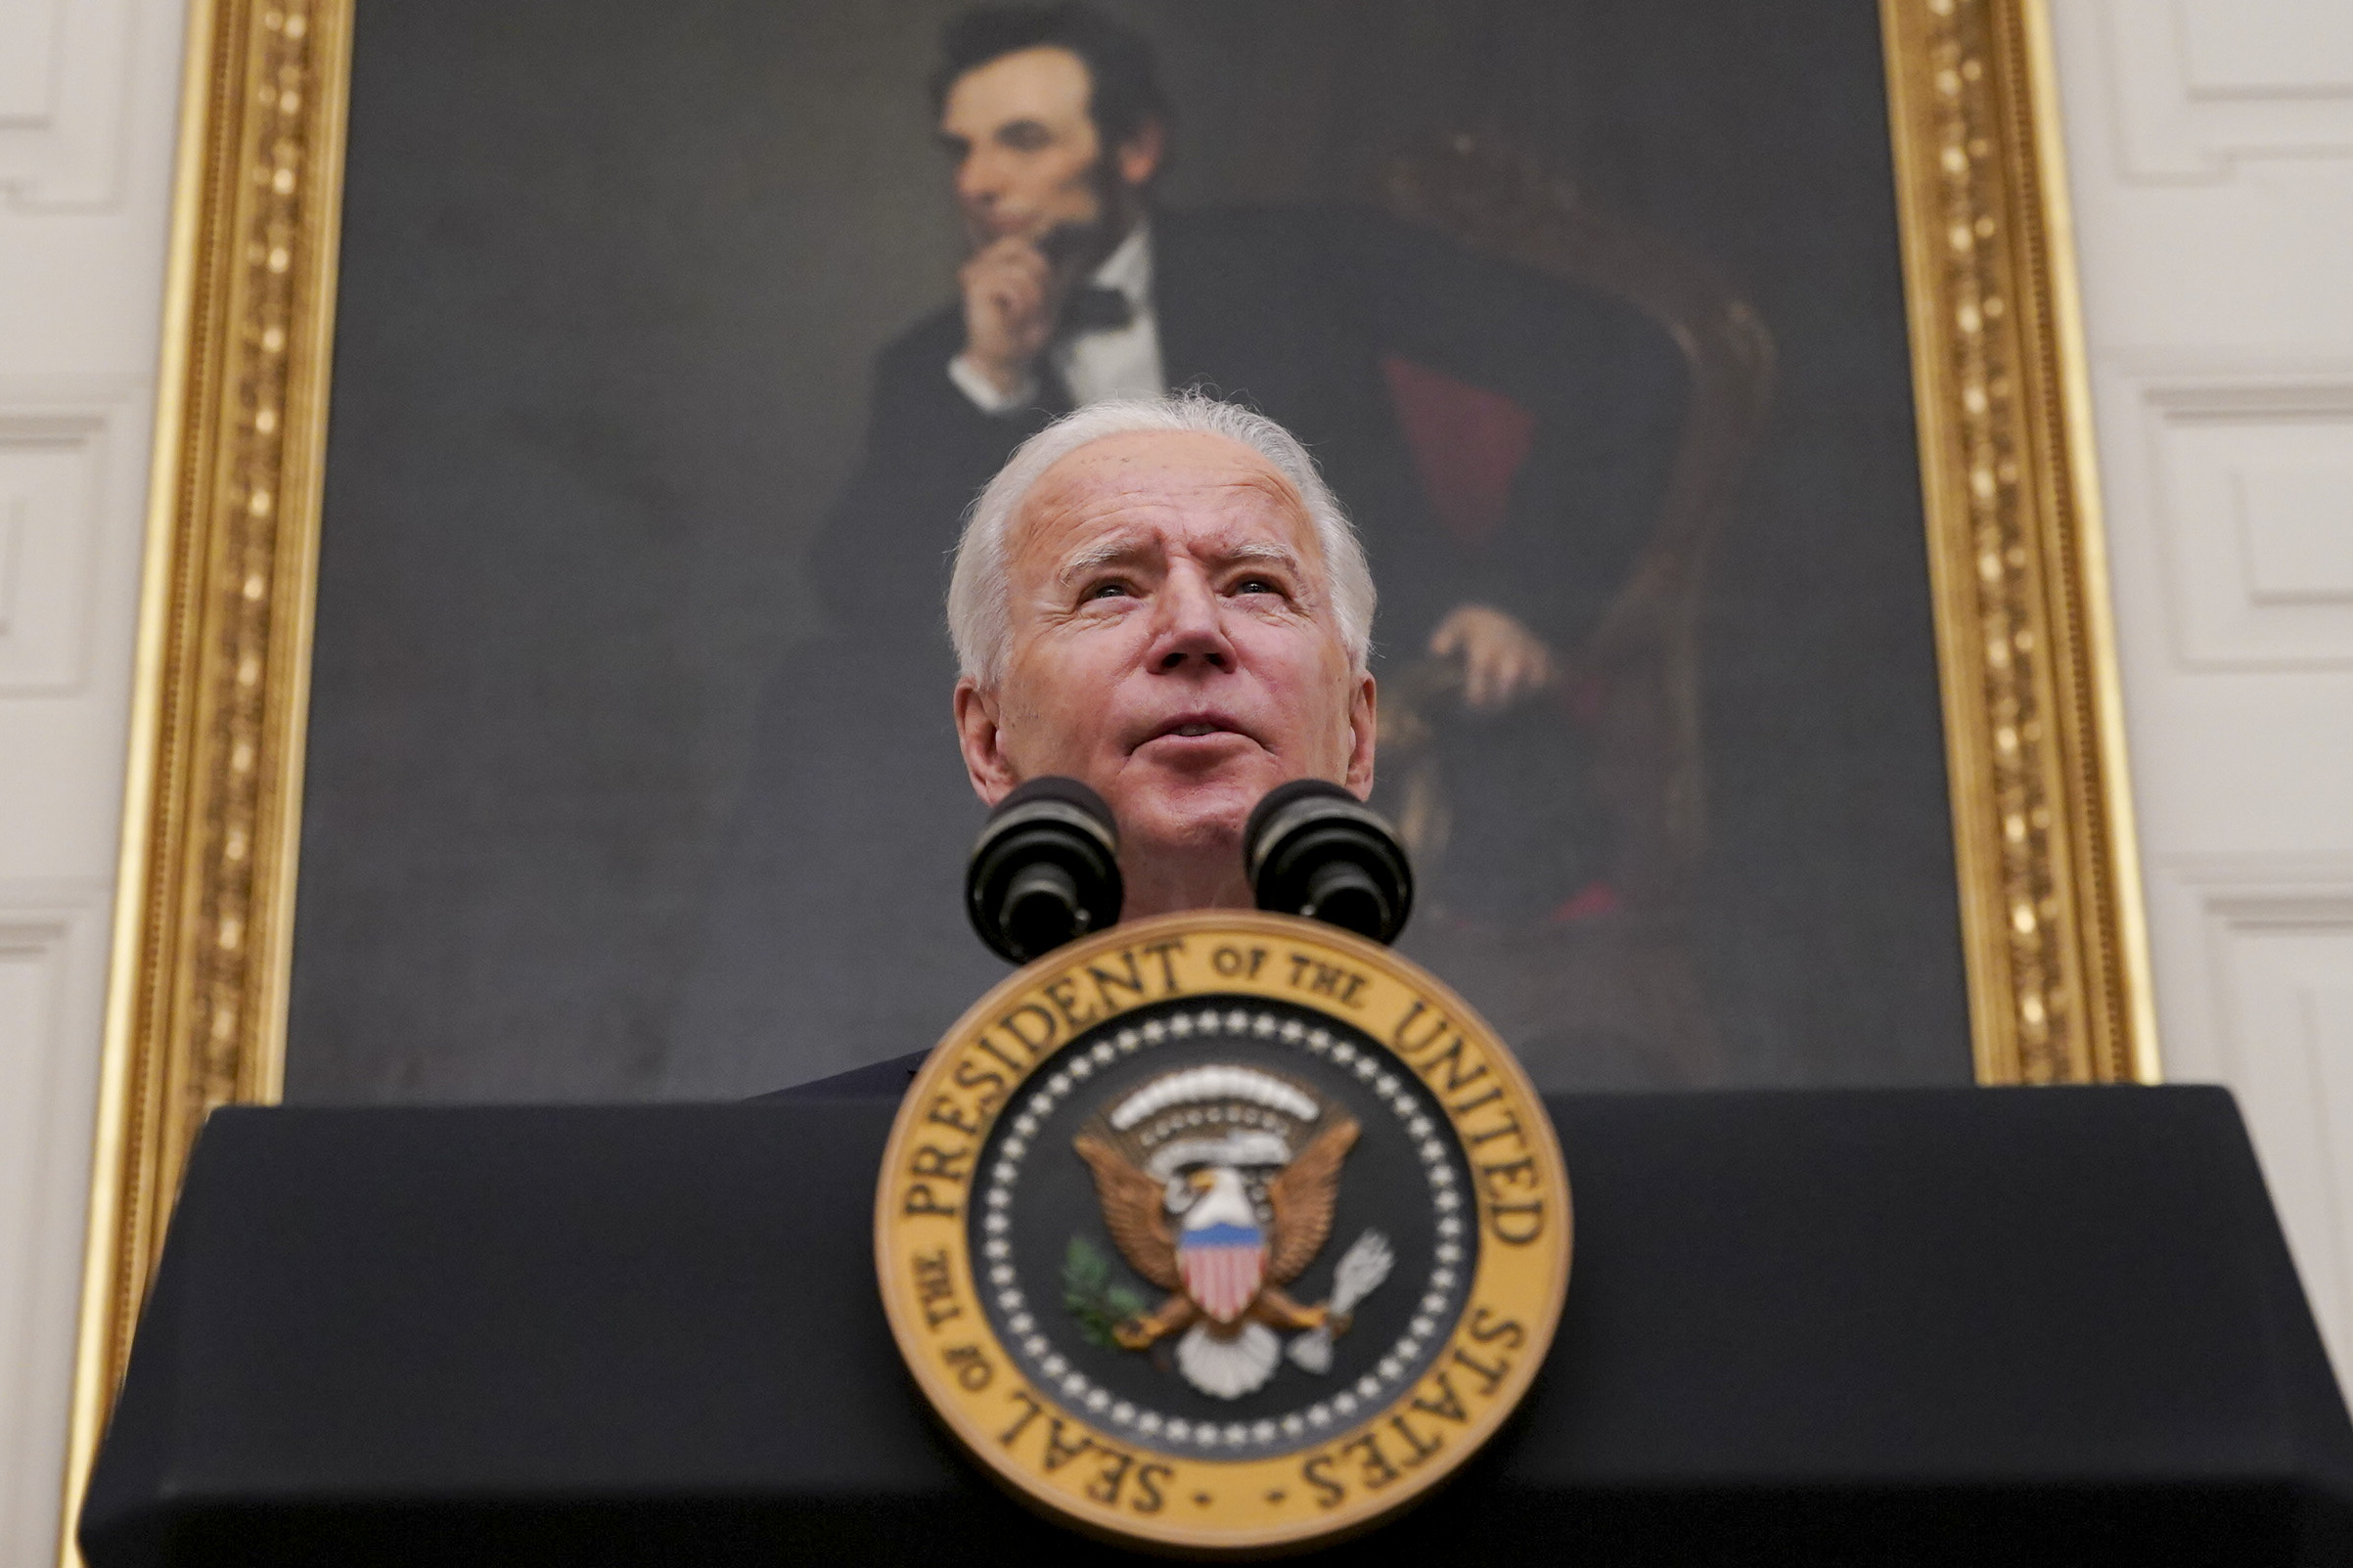 U.S. President Joe Biden speaks during an event on his administration's Covid-19 response in the State Dining Room of the White House in Washington, D.C., U.S., on Thursday, Jan. 21, 2021. Biden in his first full day in office plans to issue a sweeping set of executive orders to tackle the raging Covid-19 pandemic that will rapidly reverse or refashion many of his predecessor's most heavily criticized policies. Photographer: Al Drago/Pool/Sipa USA No Use Germany.